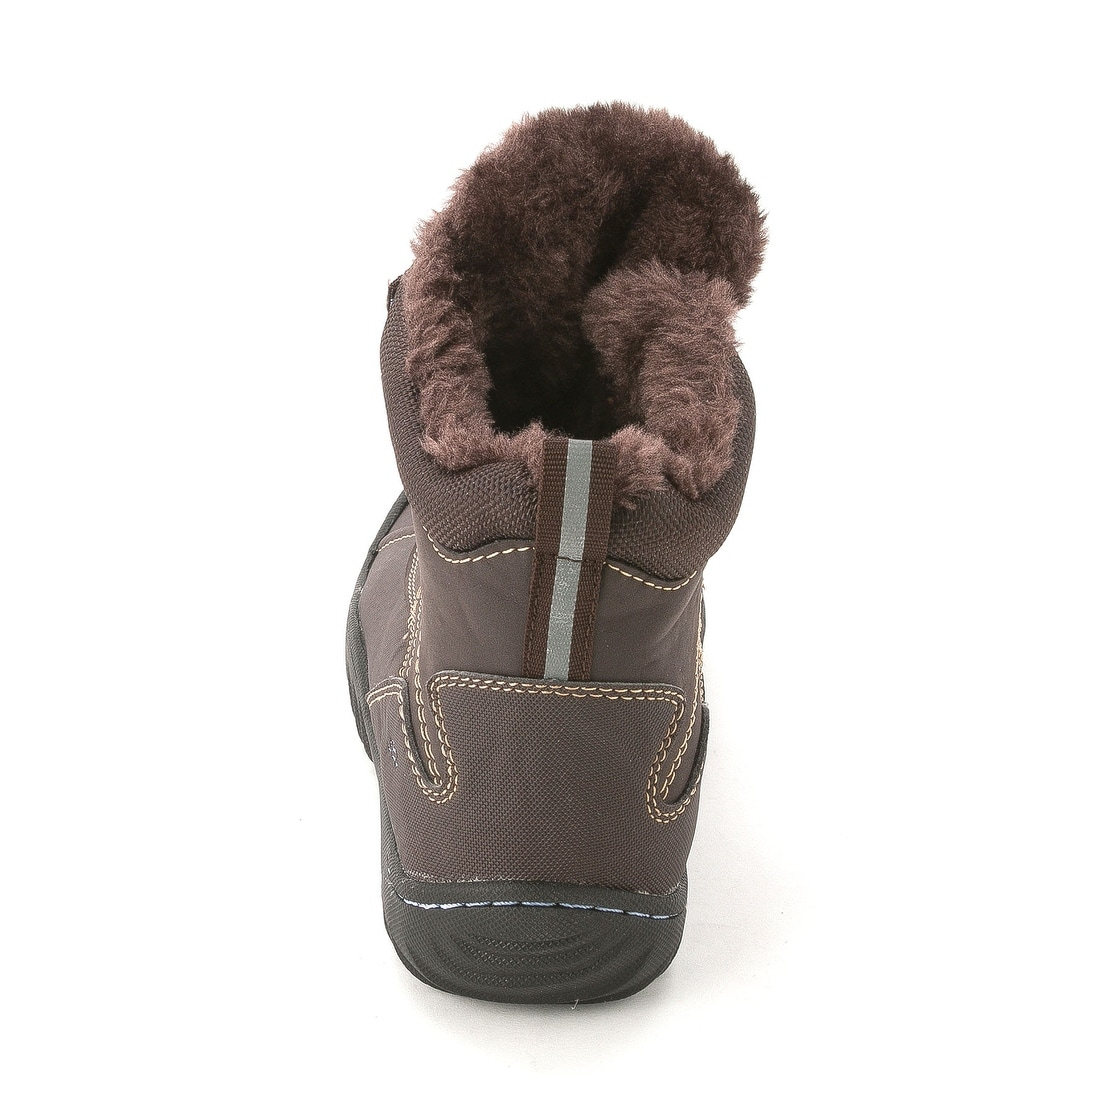 a2a56cc245853 JBU Womens Pullman Round Toe Ankle Cold Weather Boots